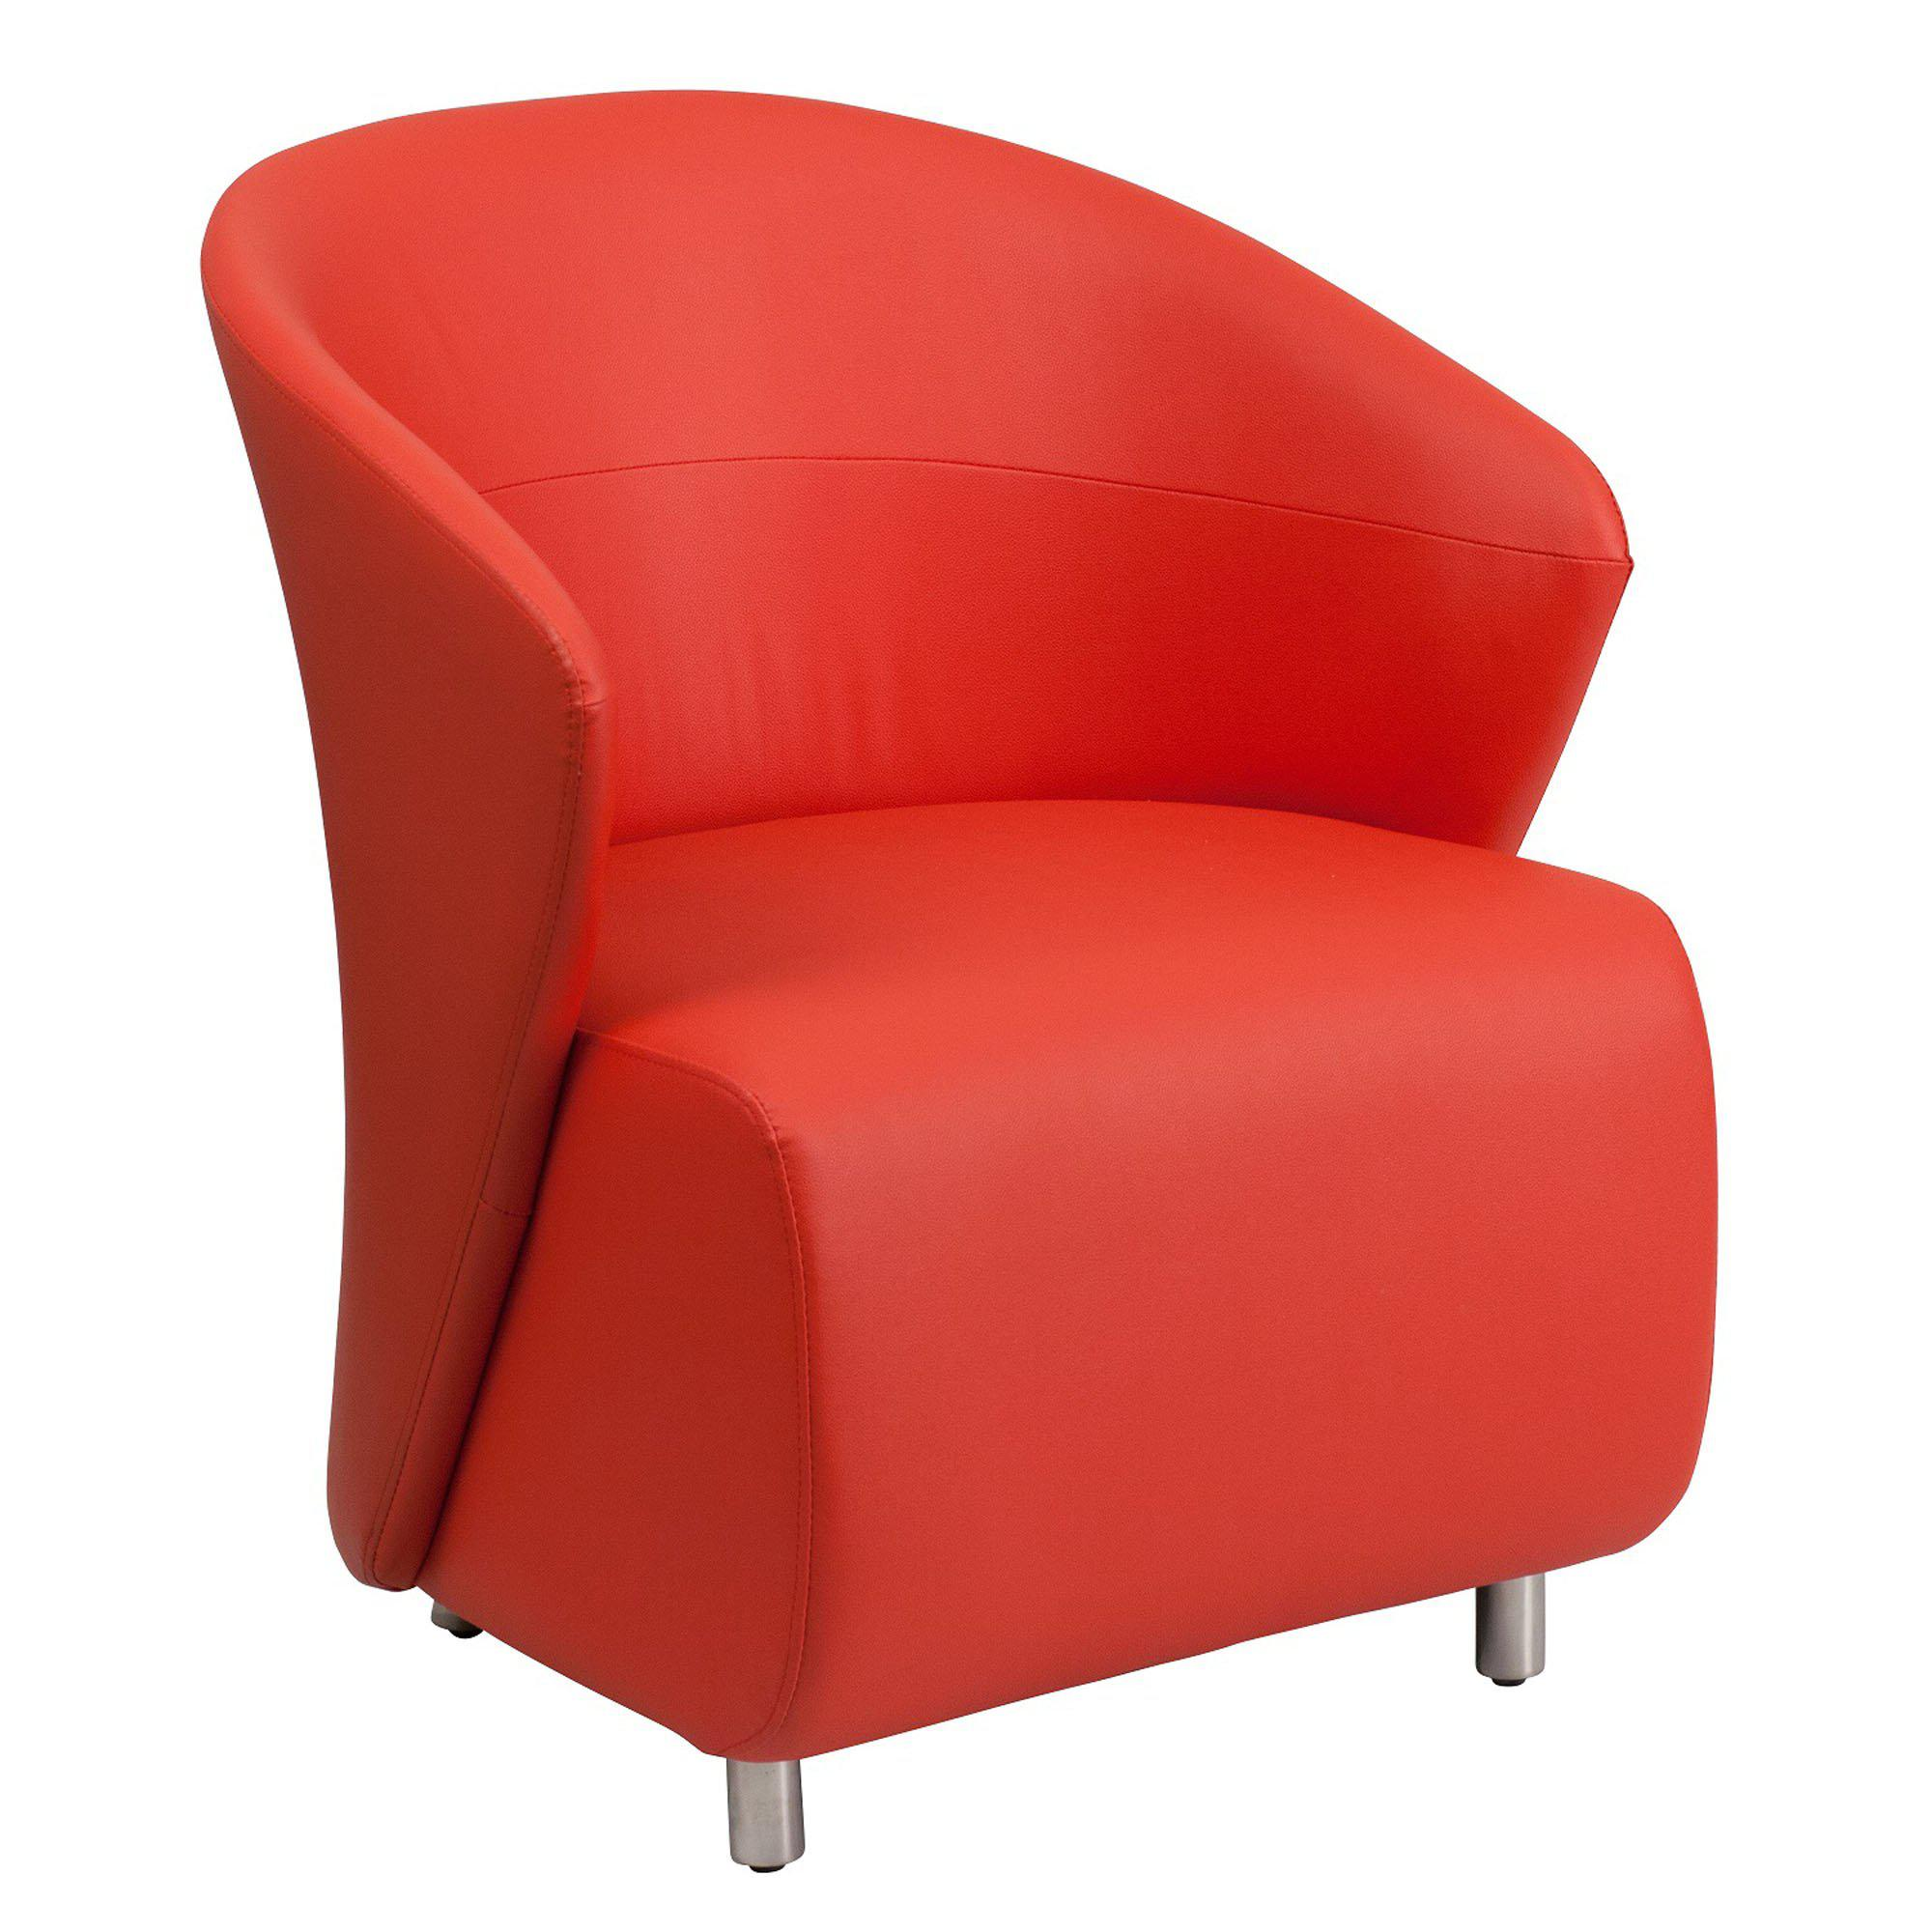 Nextgen Curved Barrel Back Reception/Lounge Chair, Red LeatherSoft Upholstery